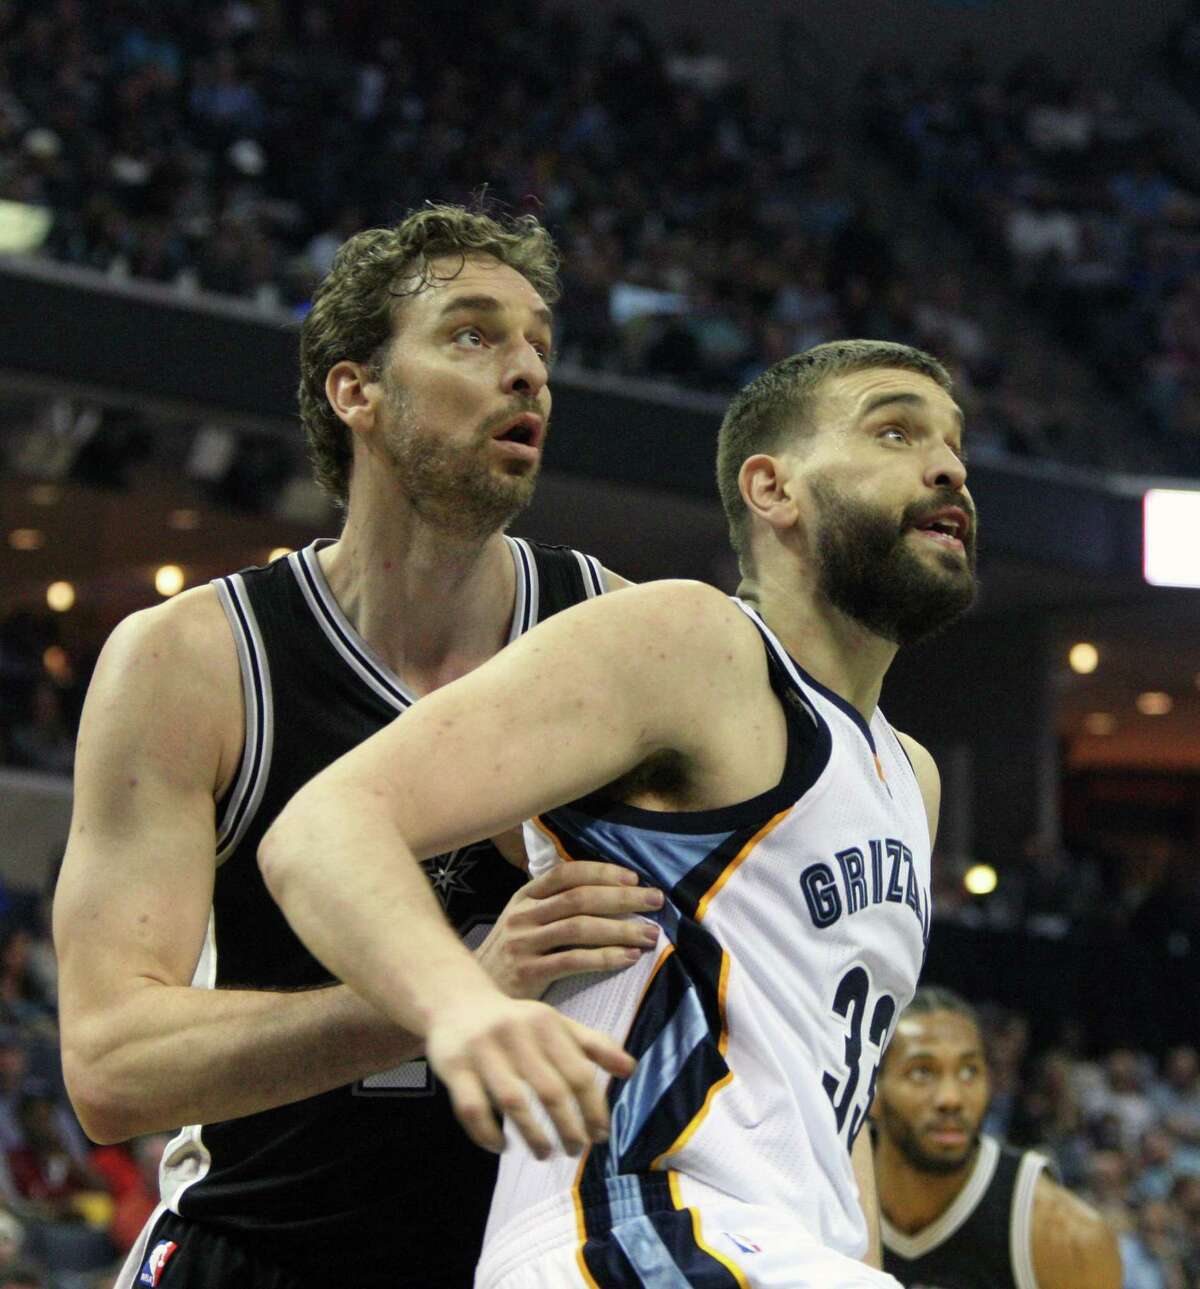 Spurs' Pau Gasol guards his brother, the Grizzlies' Marc Gasol in the first half on March 18, 2017 in Memphis, Tenn.